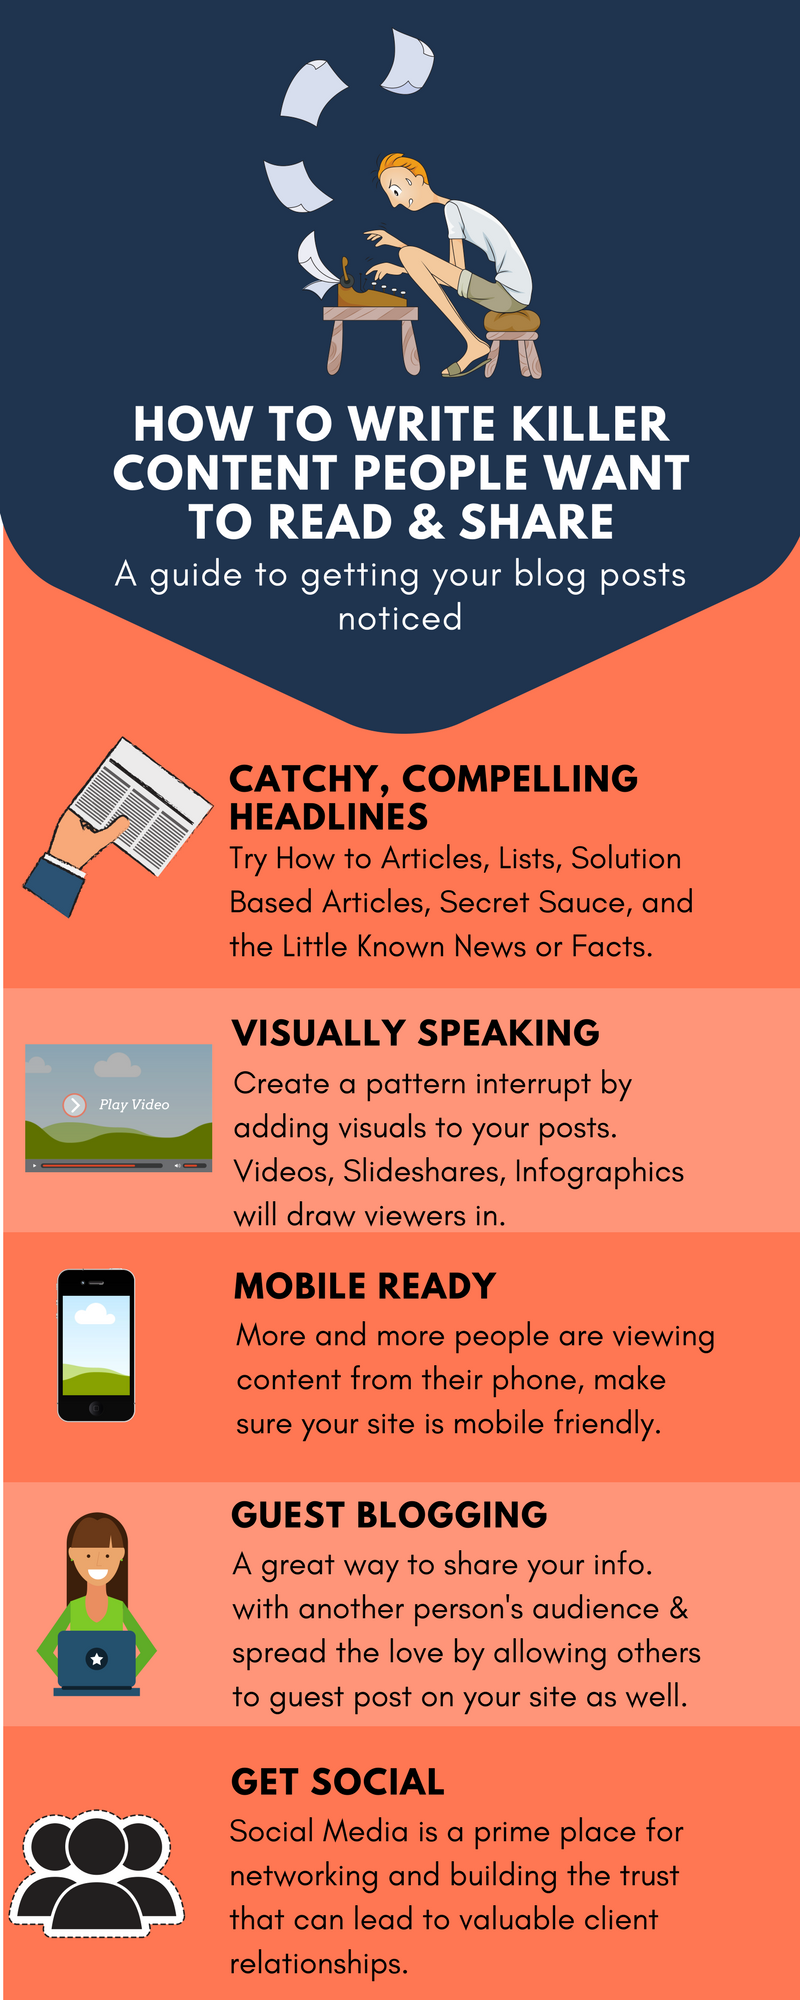 How to write killer content that gets read